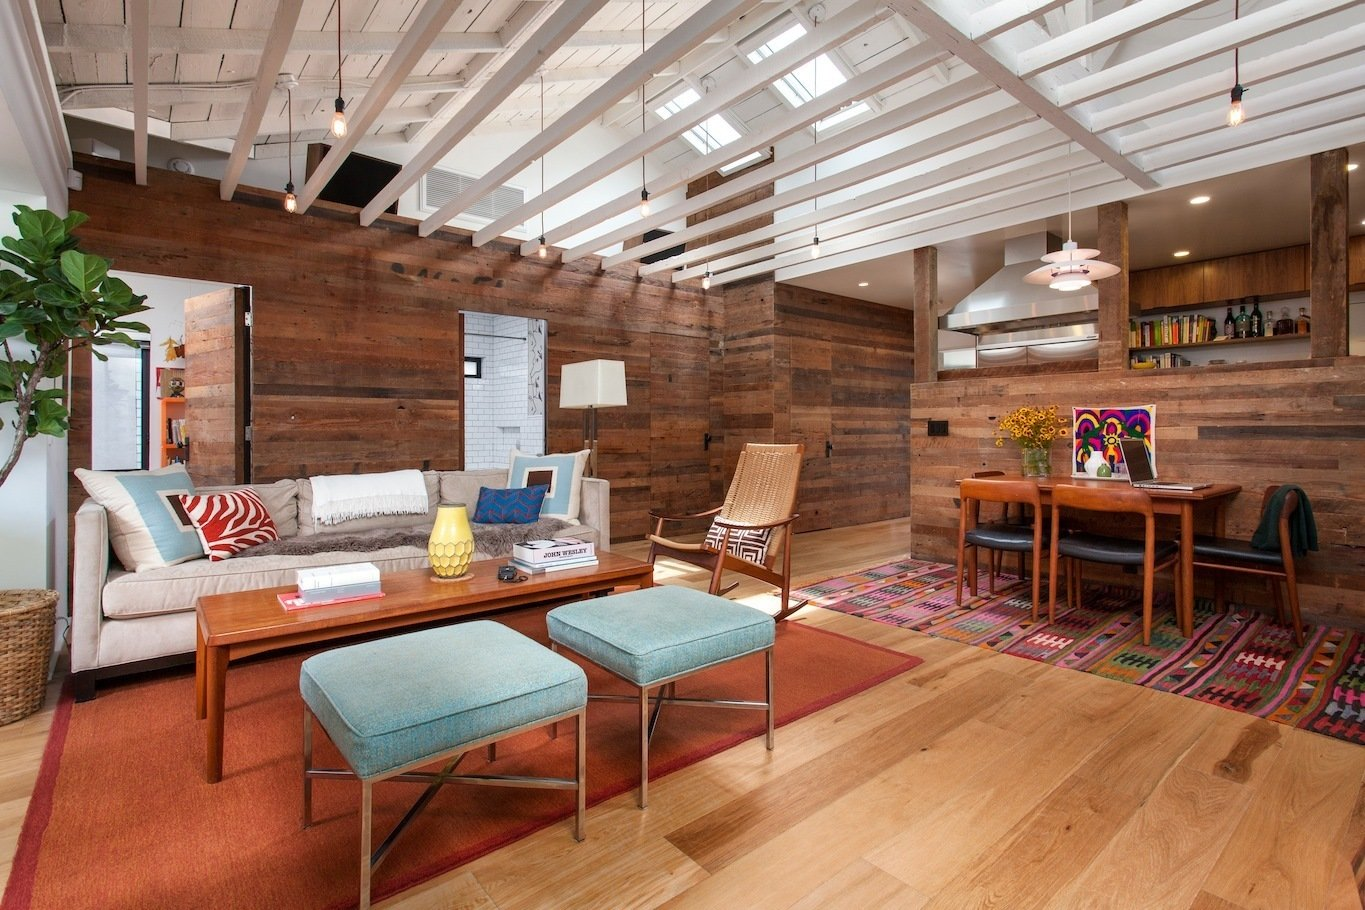 Living Room looking East towards bedrooms and bathroom hidden behind reclaimed wood siding clad walls Tagged: Chair, Sofa, Coffee Tables, Bench, Light Hardwood Floor, Ottomans, Pendant Lighting, Doors, Swing Door Type, Wood, and Interior.  Ashland Residence by Hsu McCullough